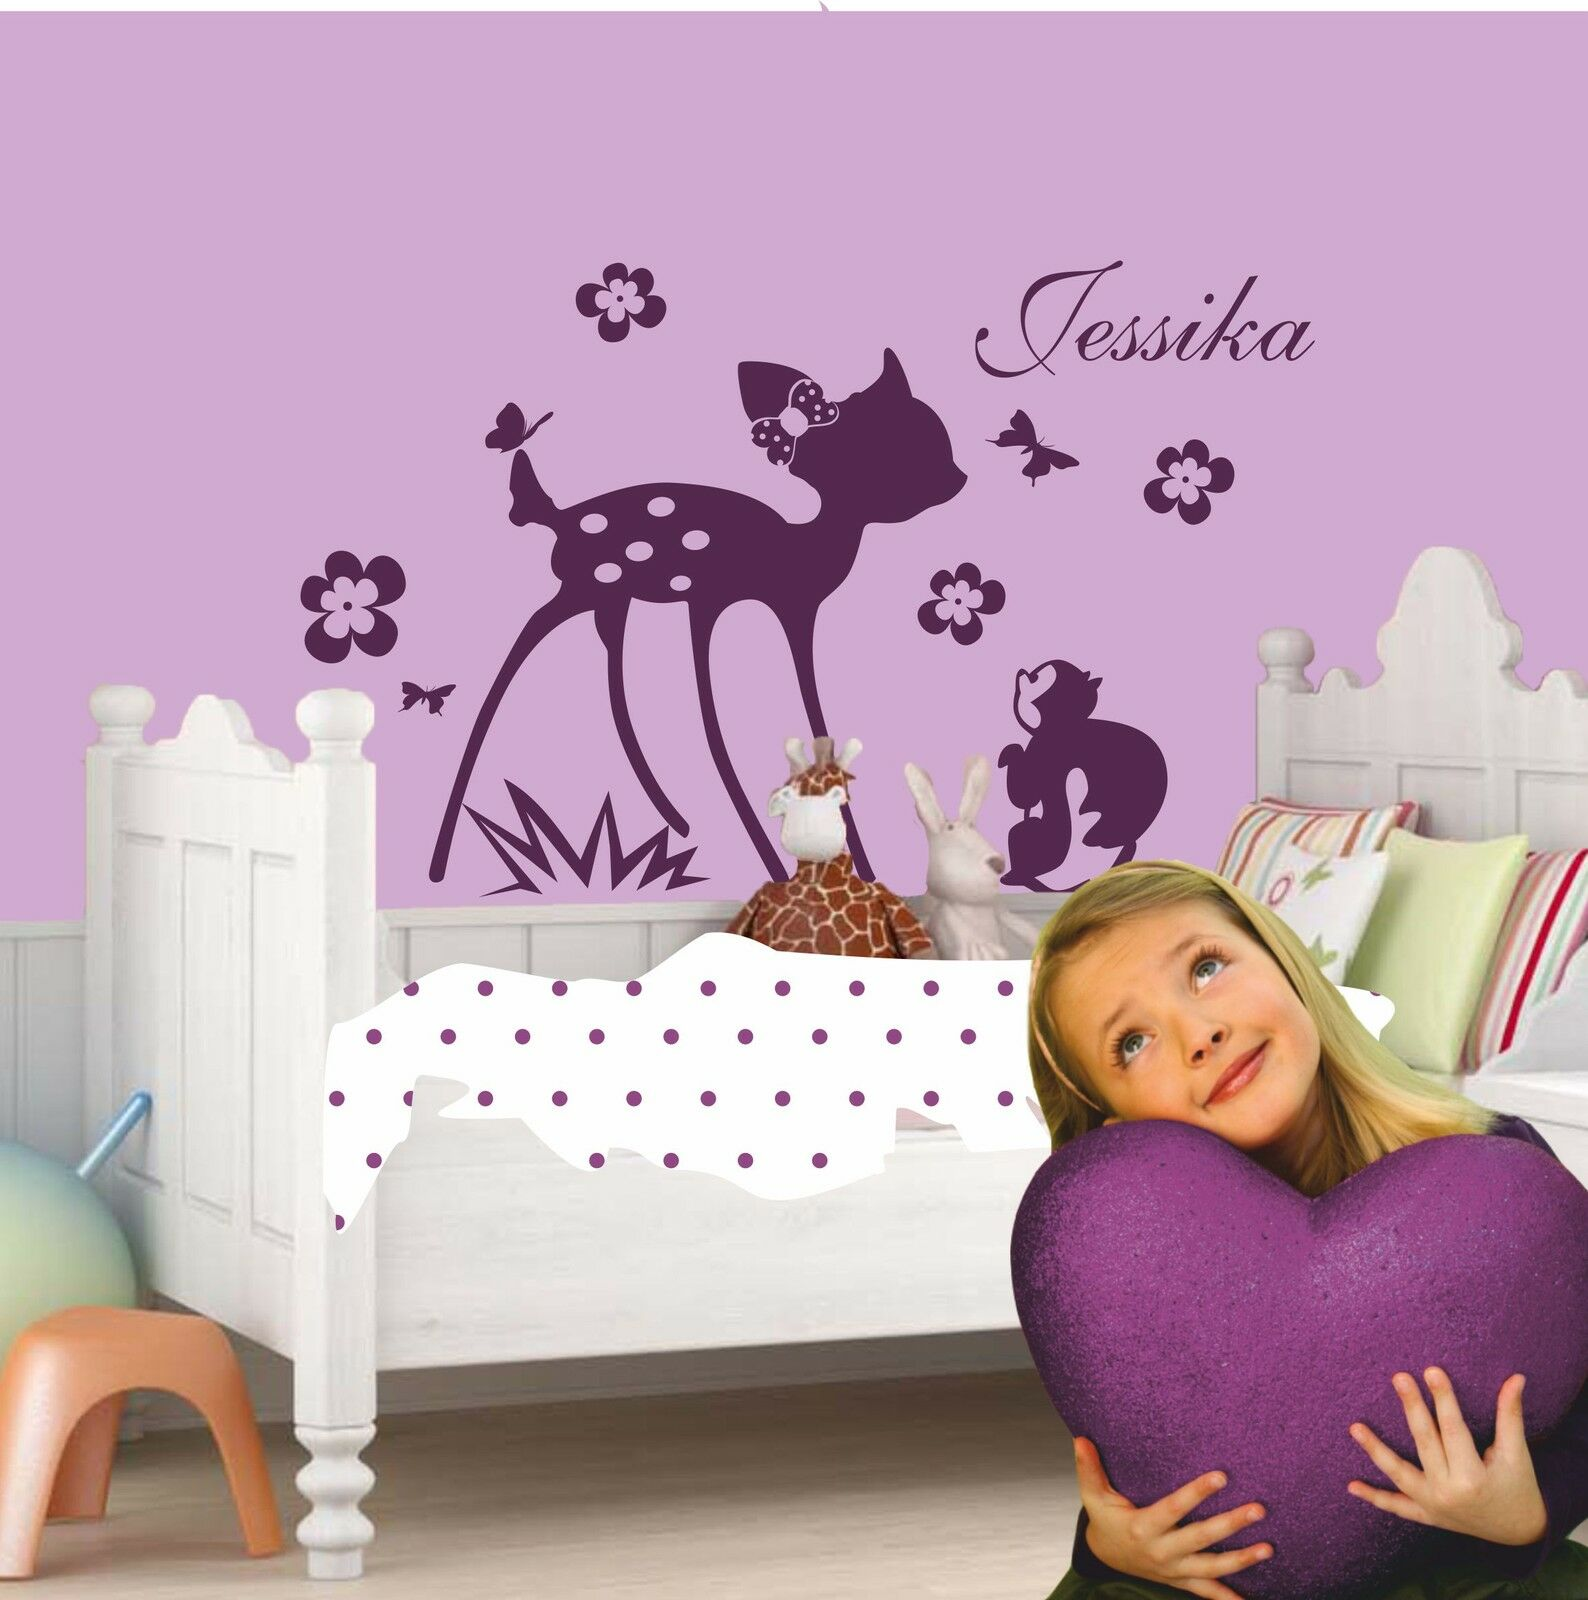 Wall Tdeer Fawn Wall Decal With Name